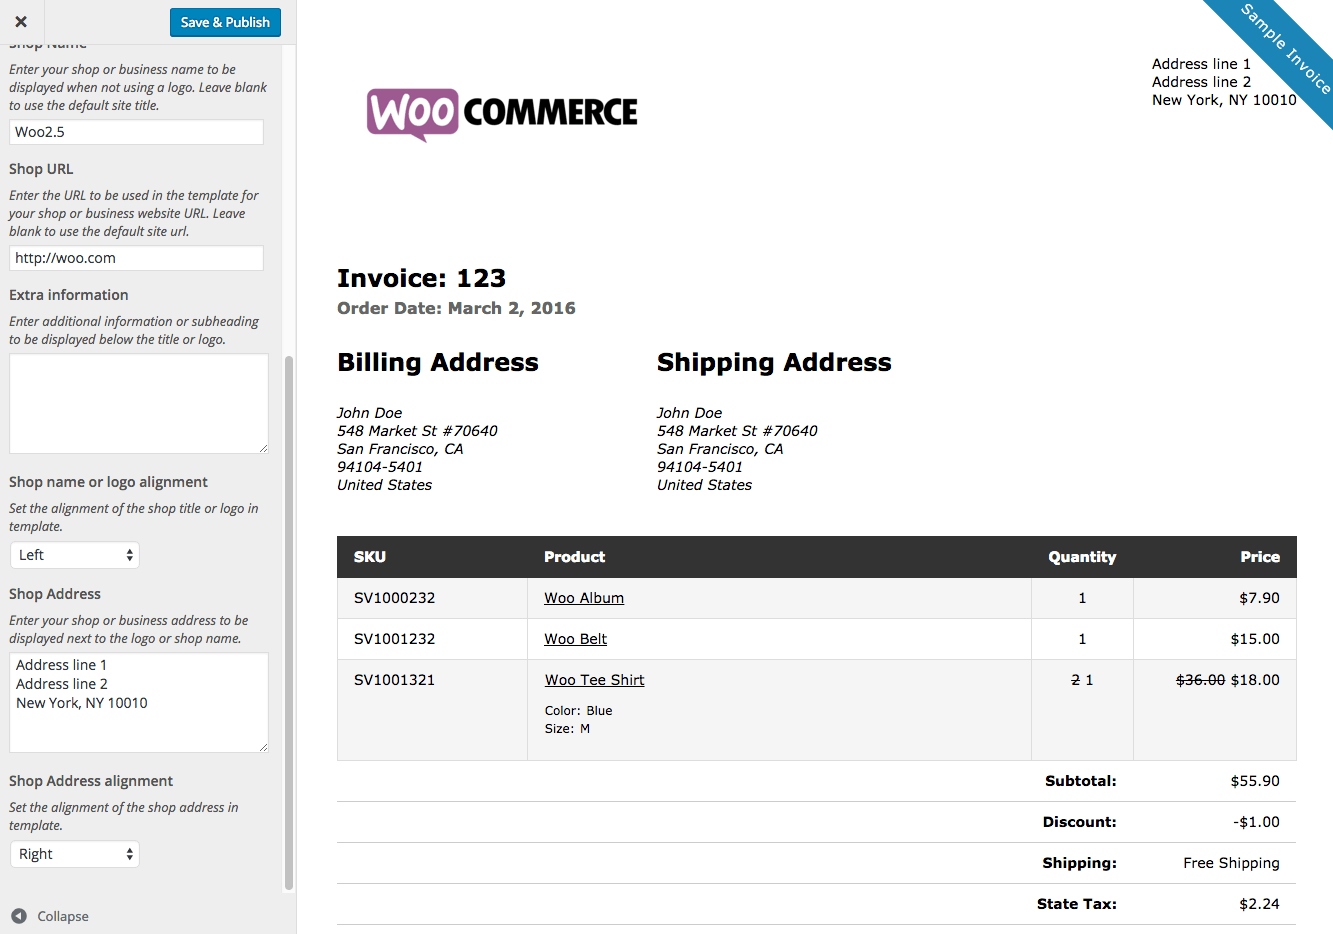 Howcanigettallerus  Personable Woocommerce Print Invoices Amp Packing Lists  Woocommerce Docs With Great Woocommerce Print Invoices  Packing Lists Customizer With Breathtaking Custom Receipt Also Text Message Read Receipt In Addition Dollar Rental Car Receipt And Rental Deposit Receipt As Well As Receipt From Store Additionally Where Is Tracking Number On Usps Receipt From Docswoocommercecom With Howcanigettallerus  Great Woocommerce Print Invoices Amp Packing Lists  Woocommerce Docs With Breathtaking Woocommerce Print Invoices  Packing Lists Customizer And Personable Custom Receipt Also Text Message Read Receipt In Addition Dollar Rental Car Receipt From Docswoocommercecom